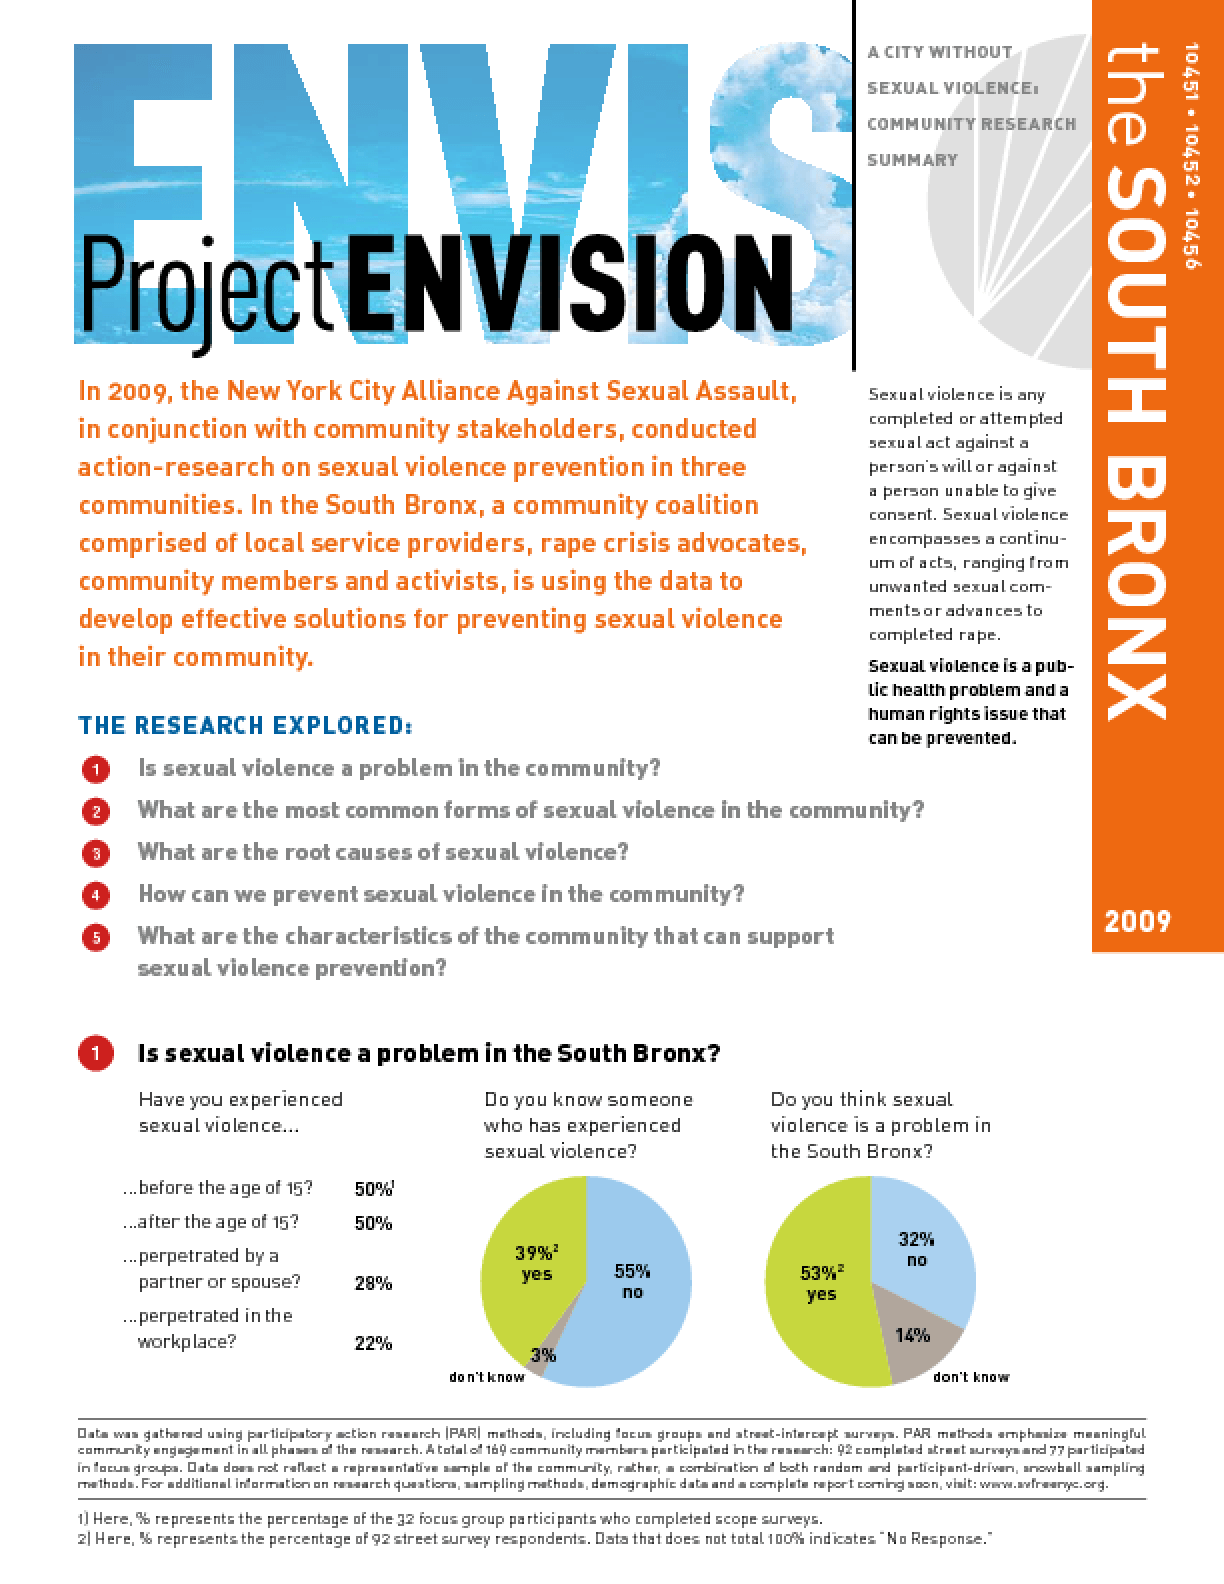 Project Envision: Community Needs Assessment - South Bronx